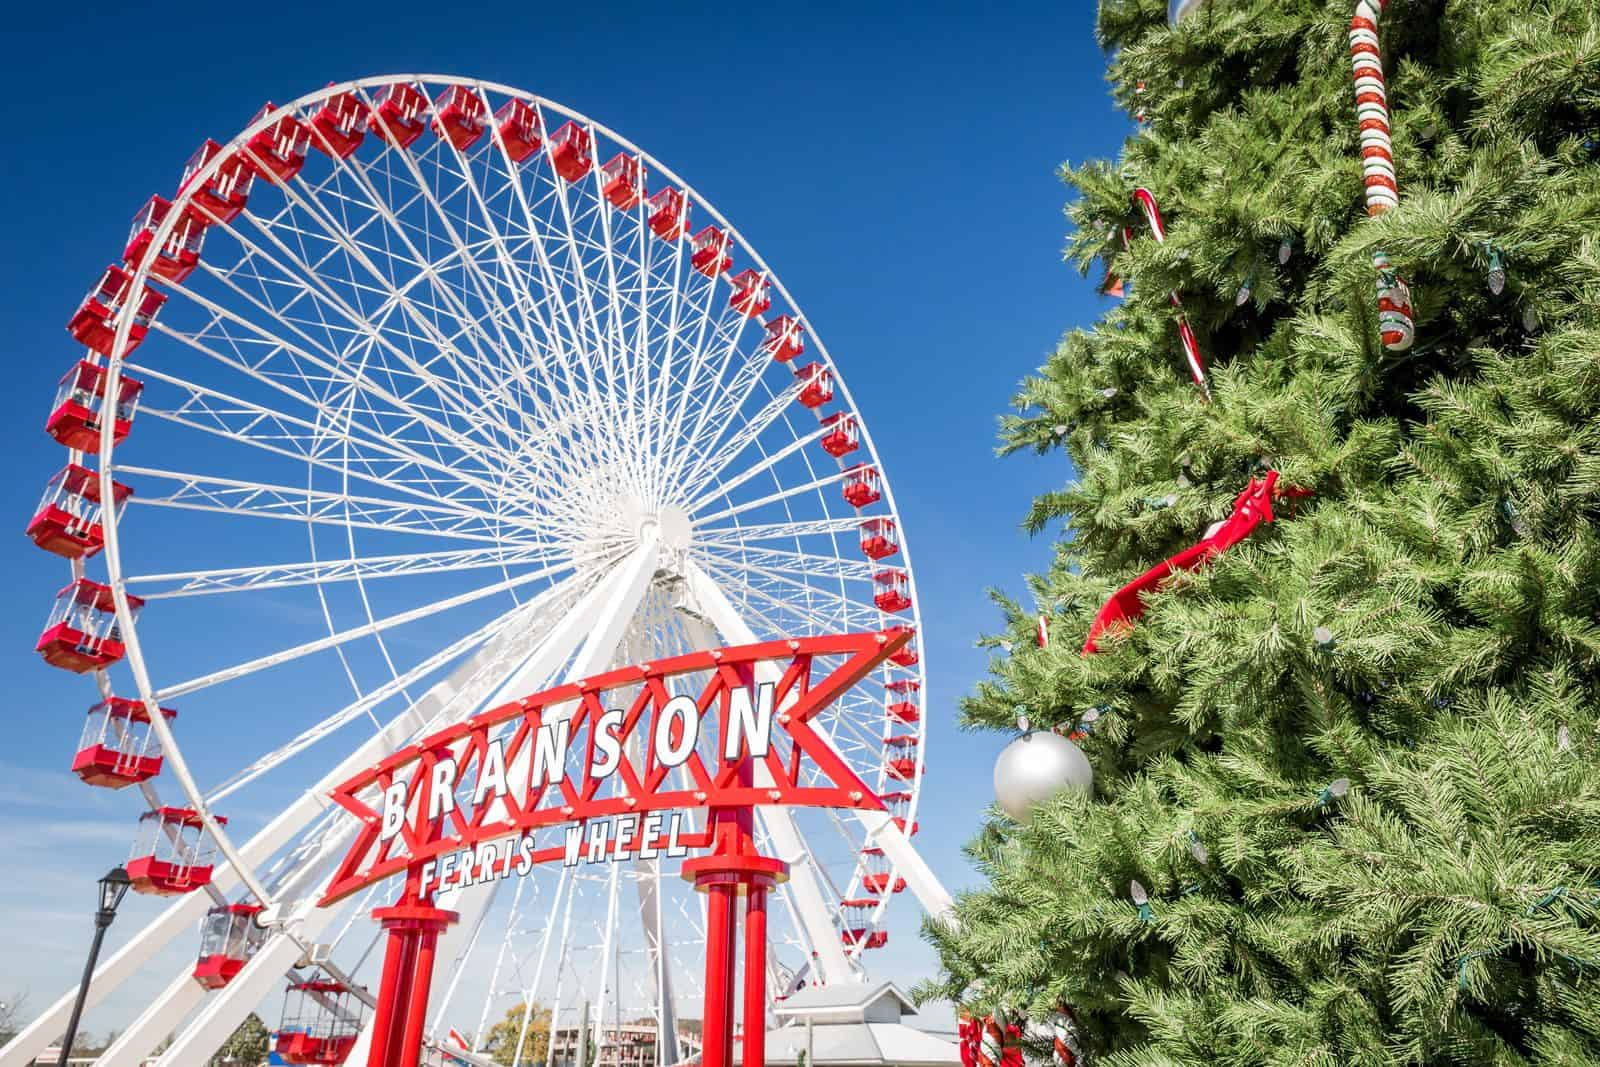 BRANSON FERRIS WHEEL AT CHRISTMAS